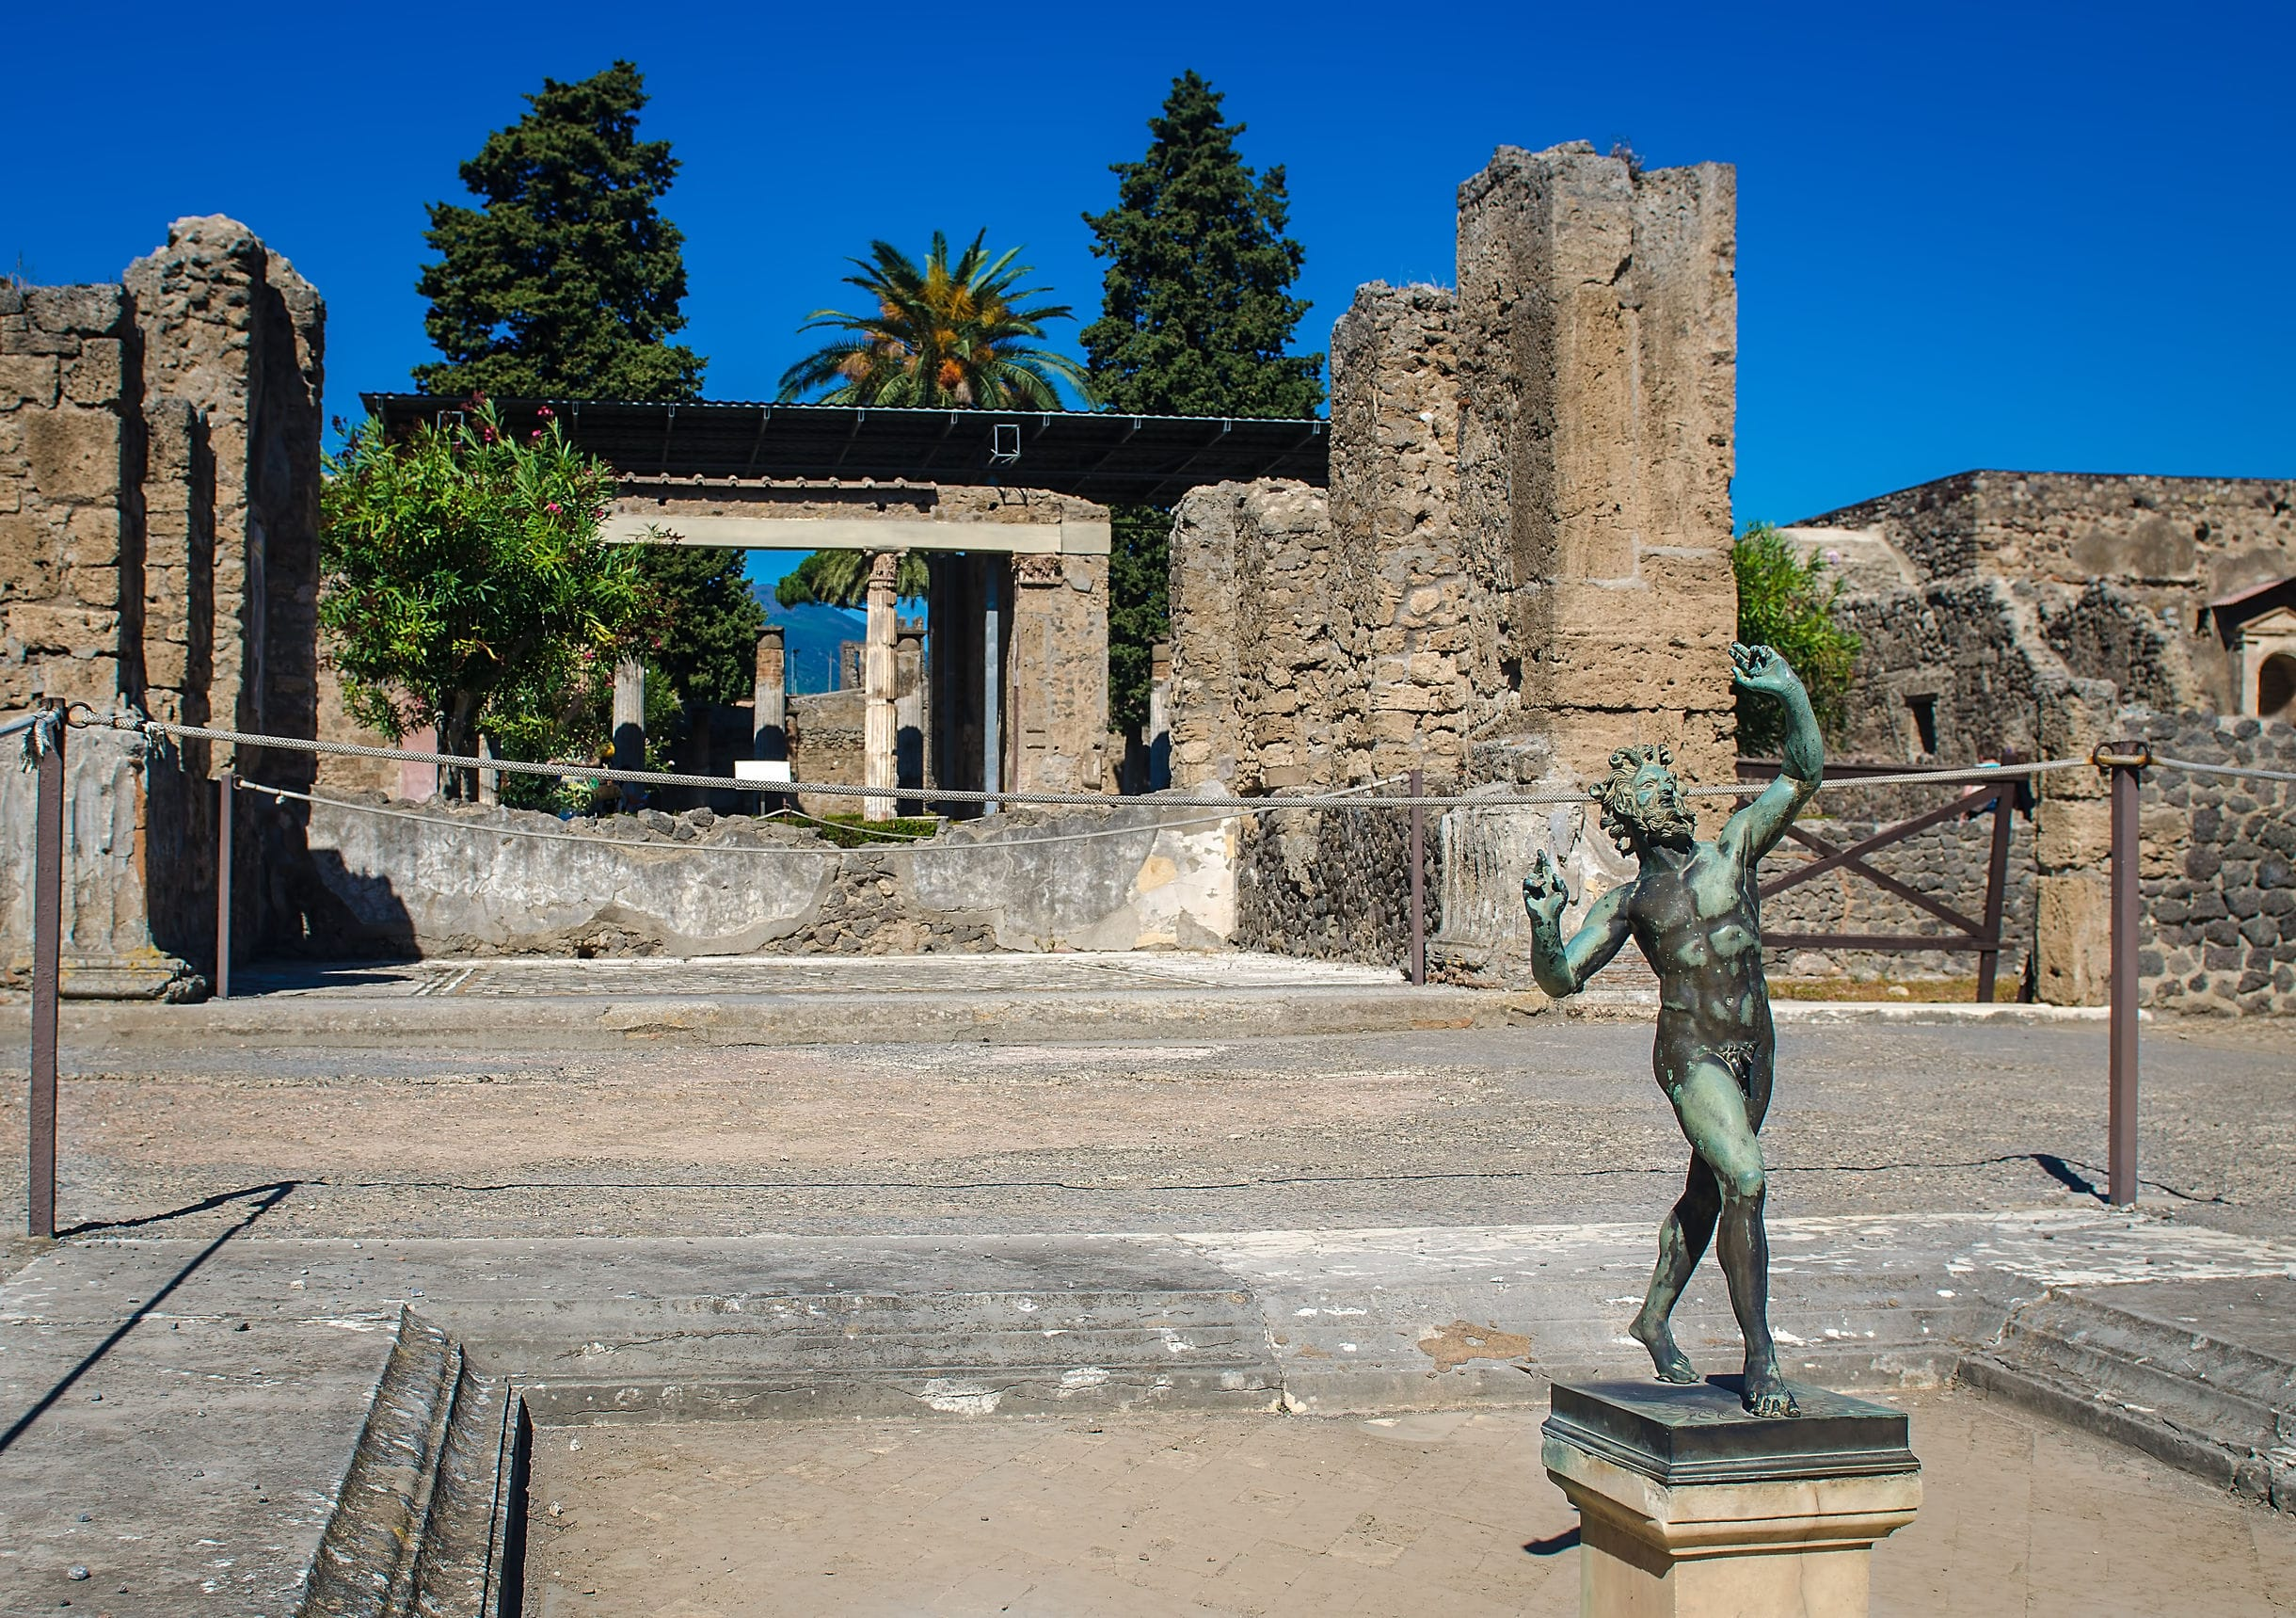 House of the Faun in Pompeii